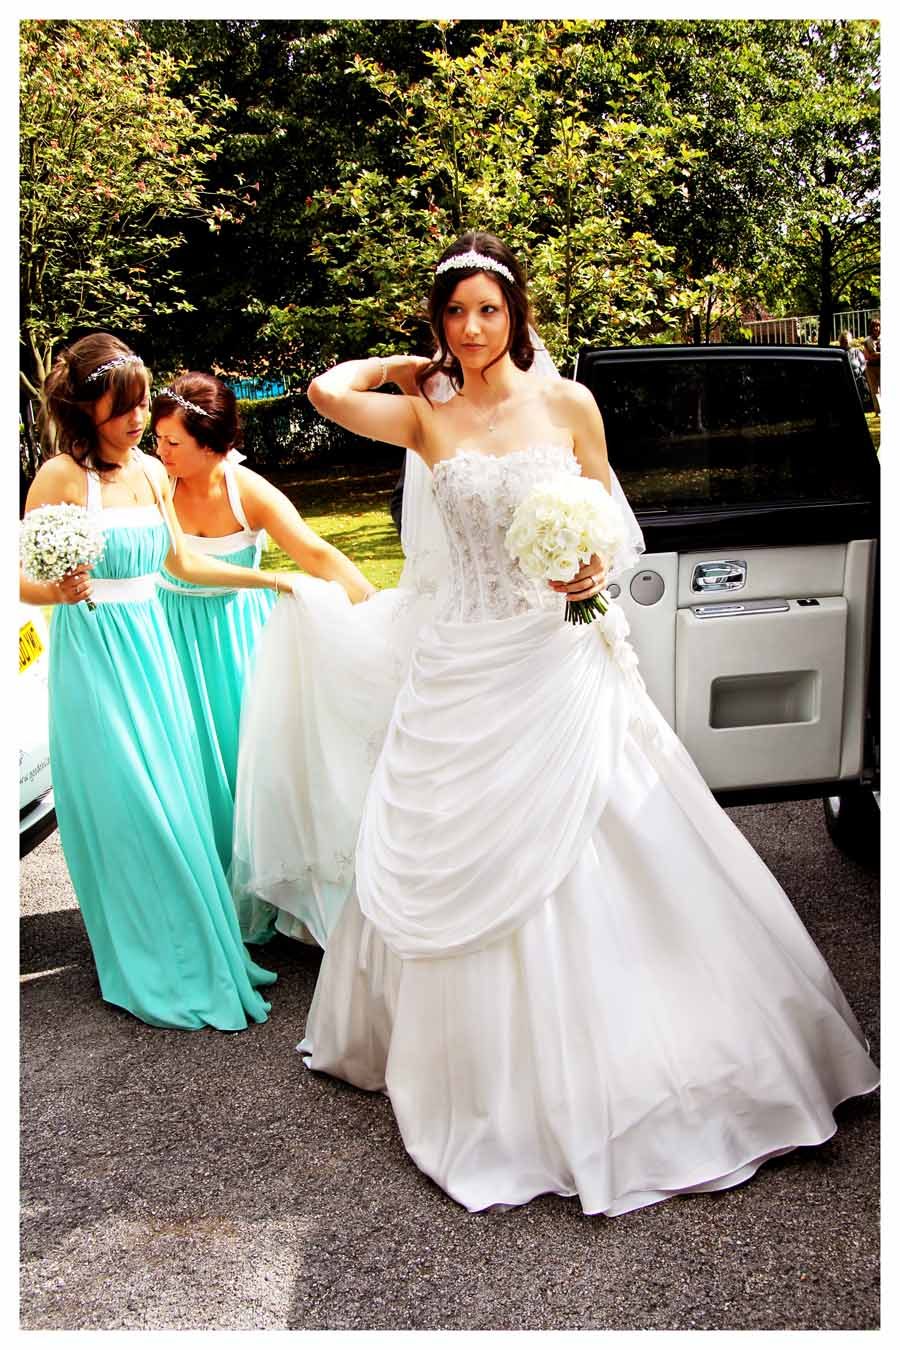 BRIDE Photos by Simeon Thaw copyright 2014 (94).jpg